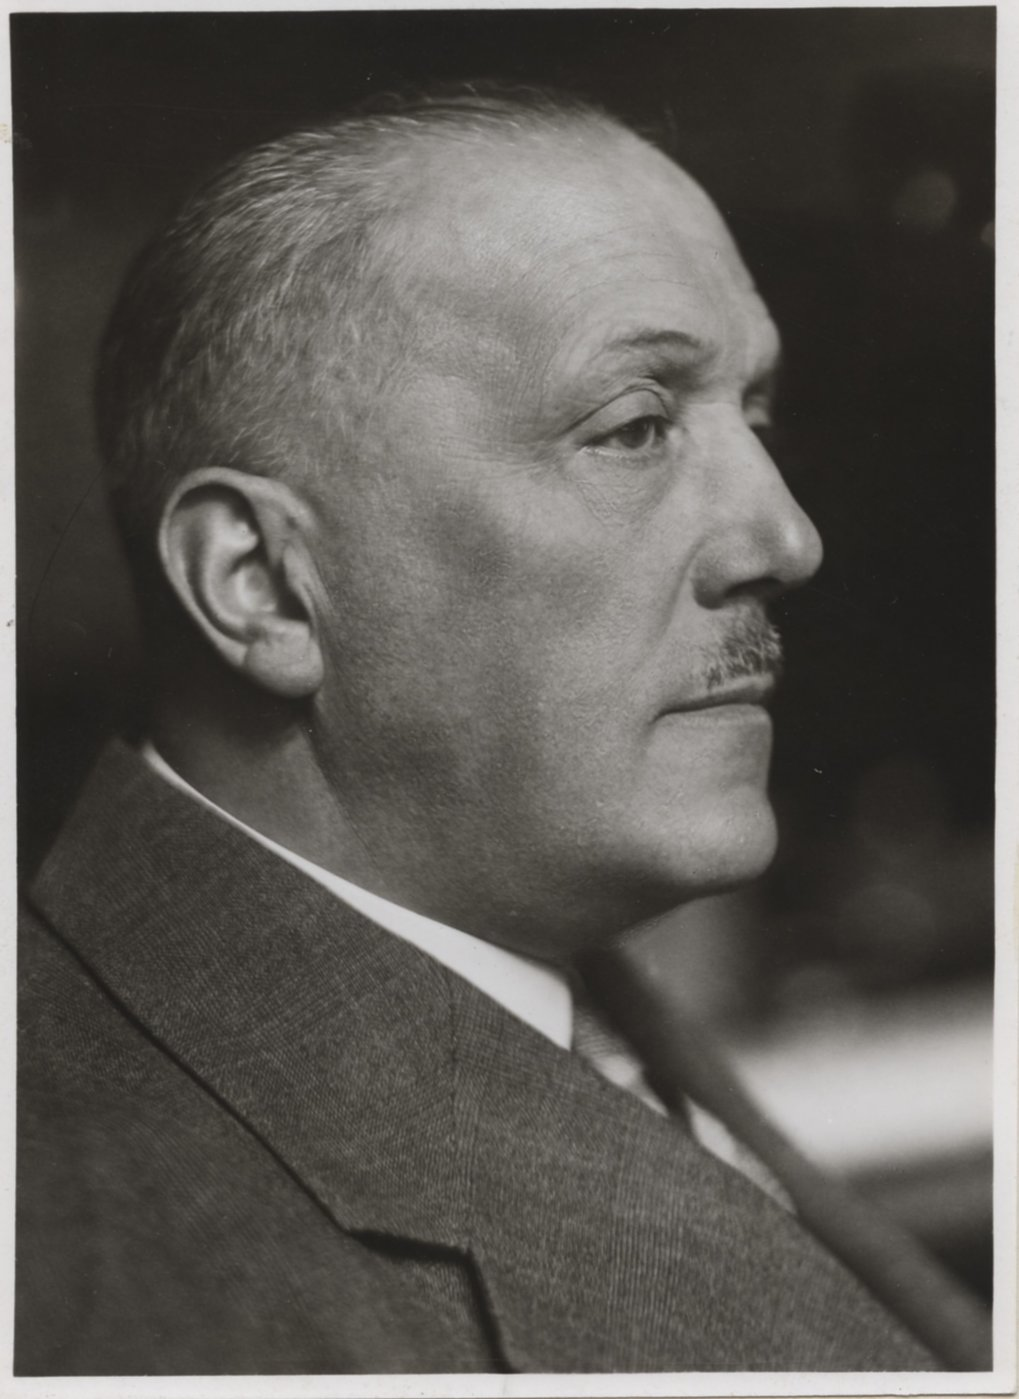 Otto Petersen who served as managing director of the Verein Deutscher Eisenhüttenleute from 1917 onwards was a particularly active supporter of the creation of a common steel research institute.